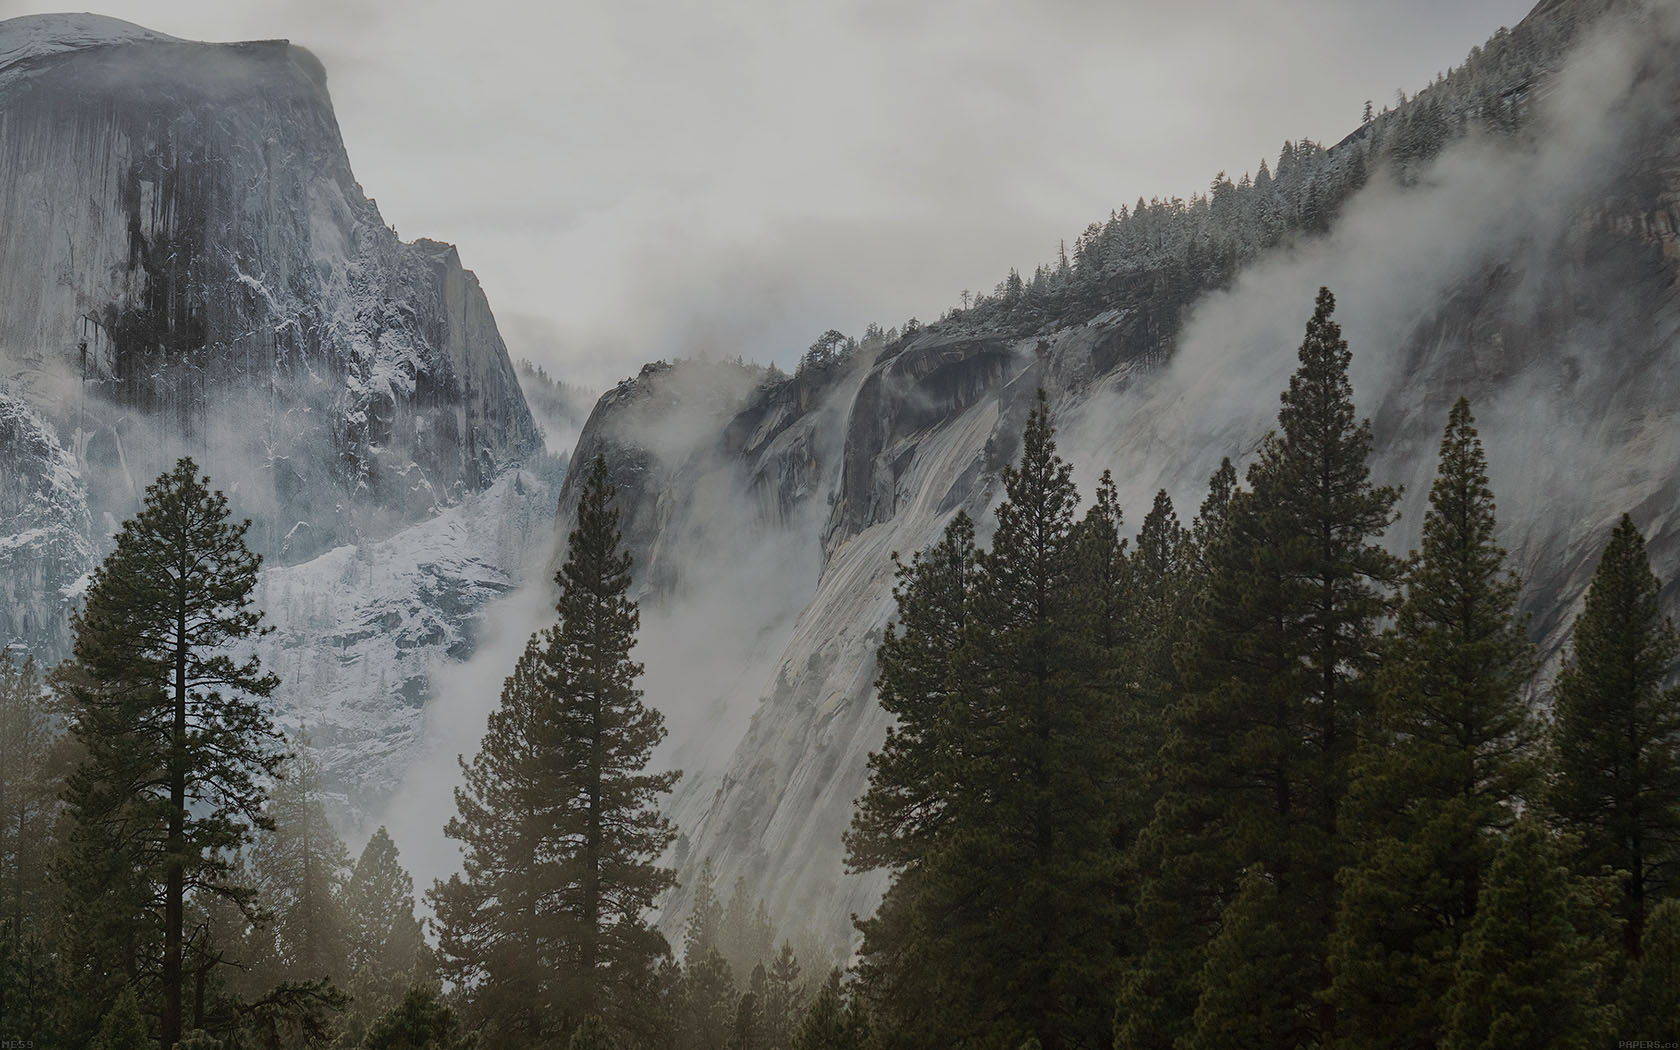 Fall Hd Wallpapers For Mac Me59 Yosemite Snow Dark Mountain Nature Wallpaper